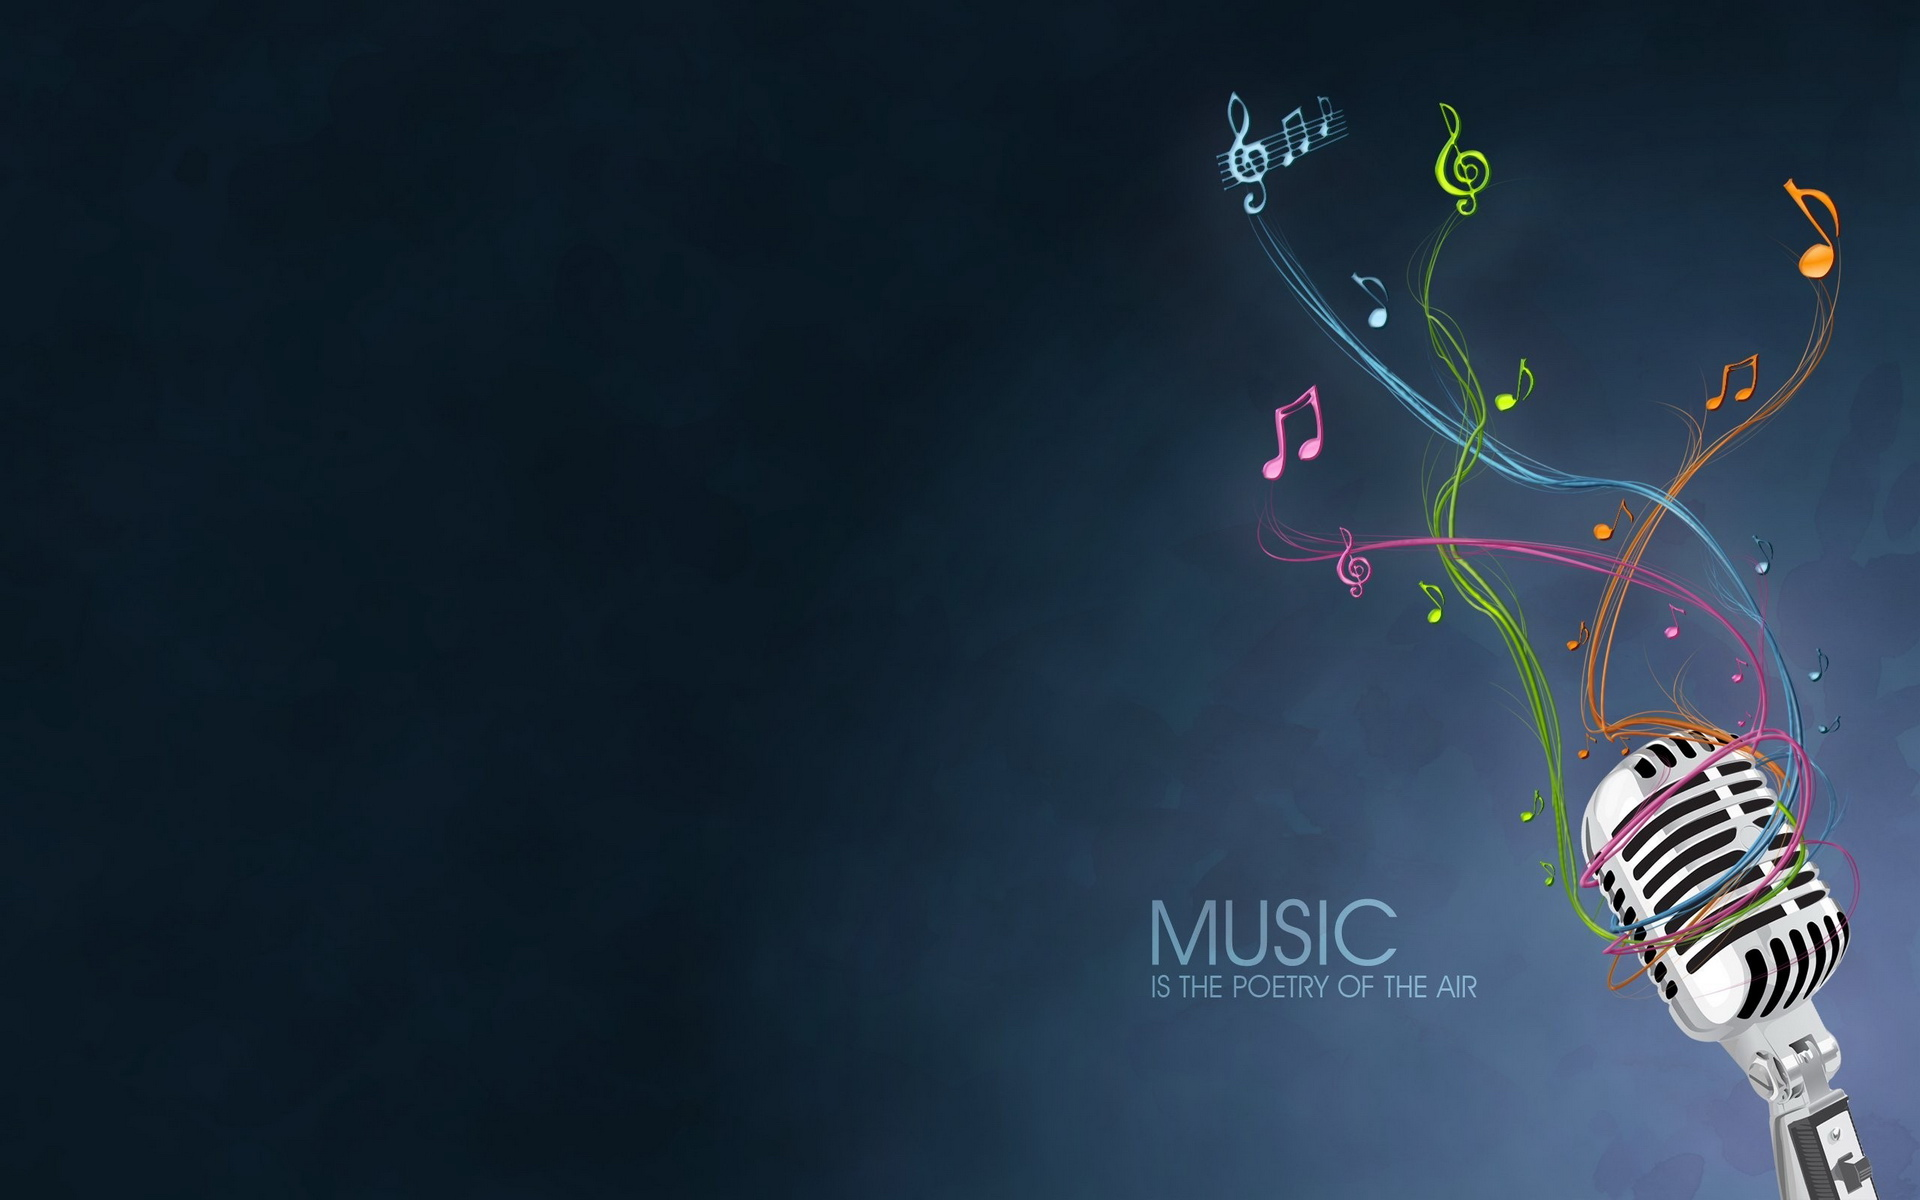 musica windows live space: